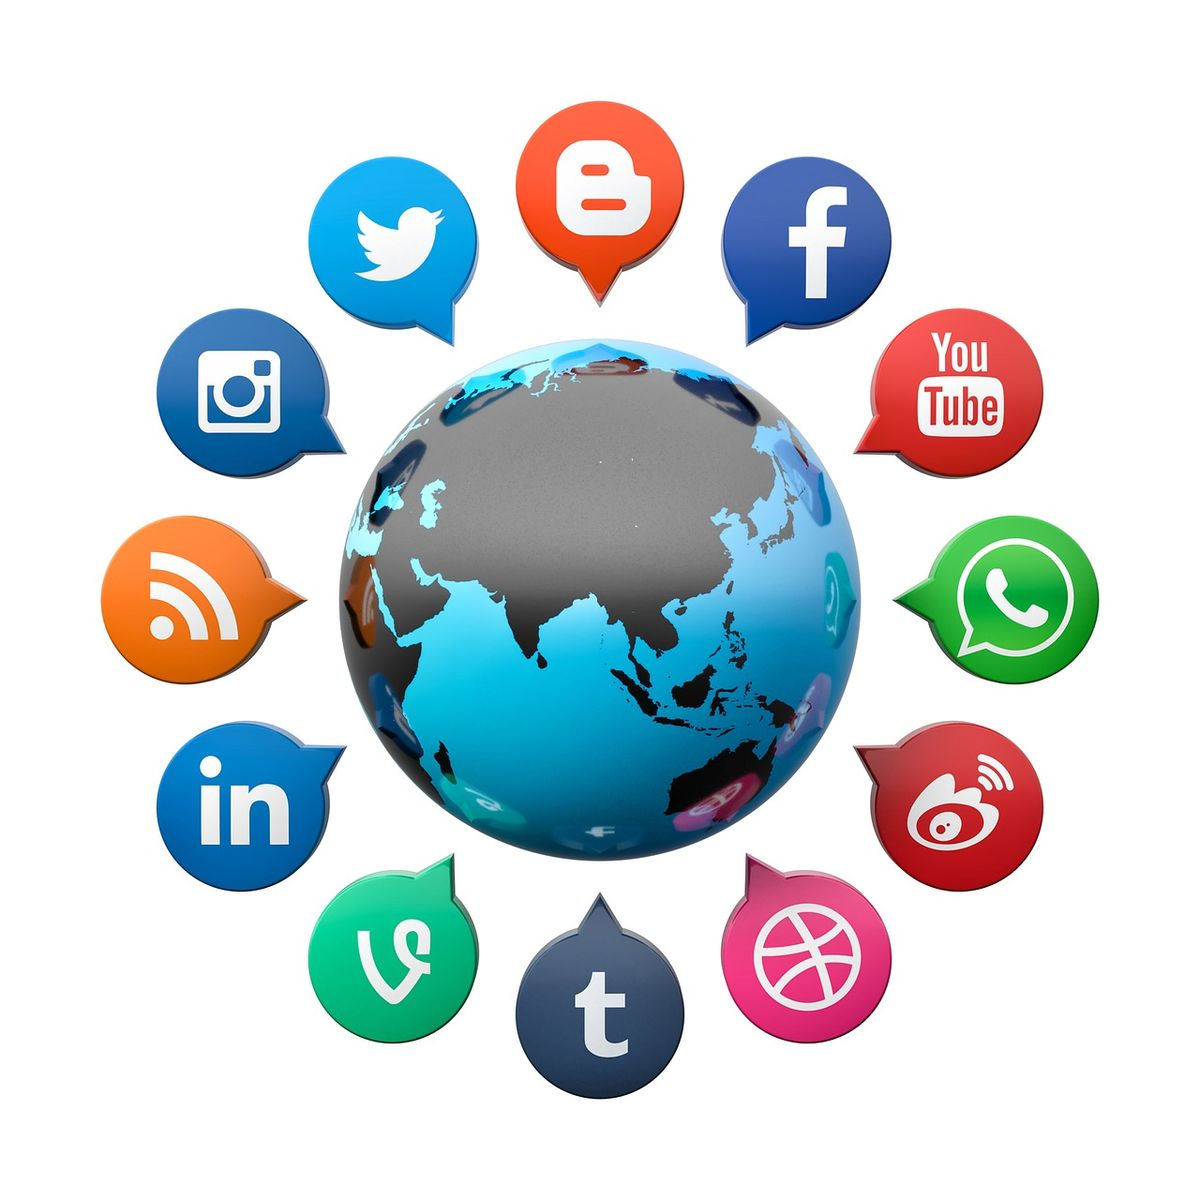 Benefits of Using Social Networking in Business